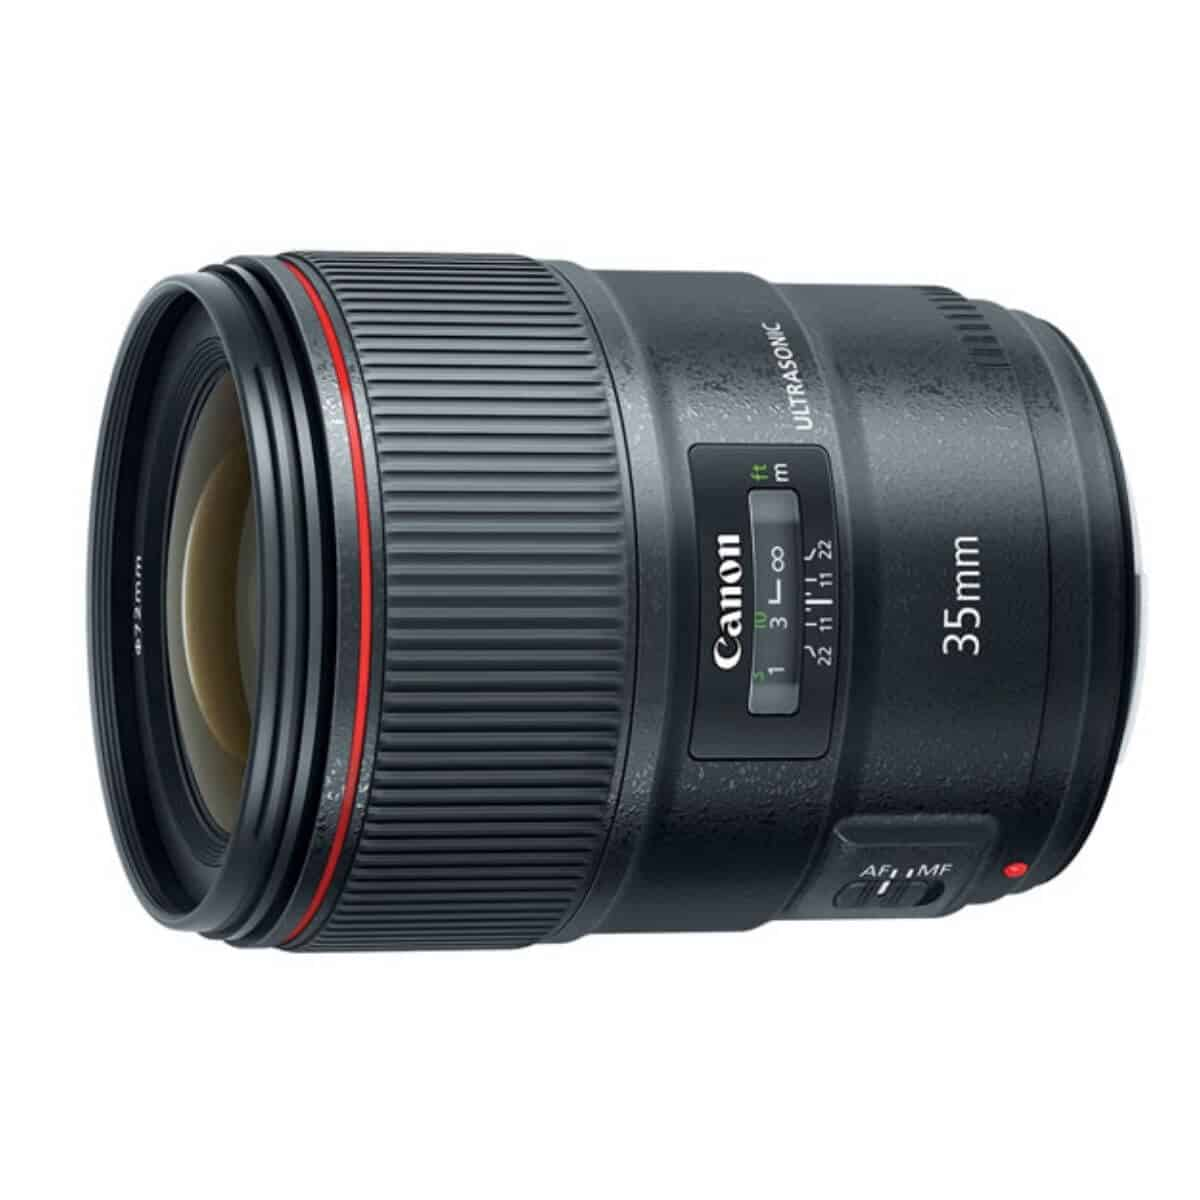 Side and long view of the Canon 35mm f/1.4 lens.